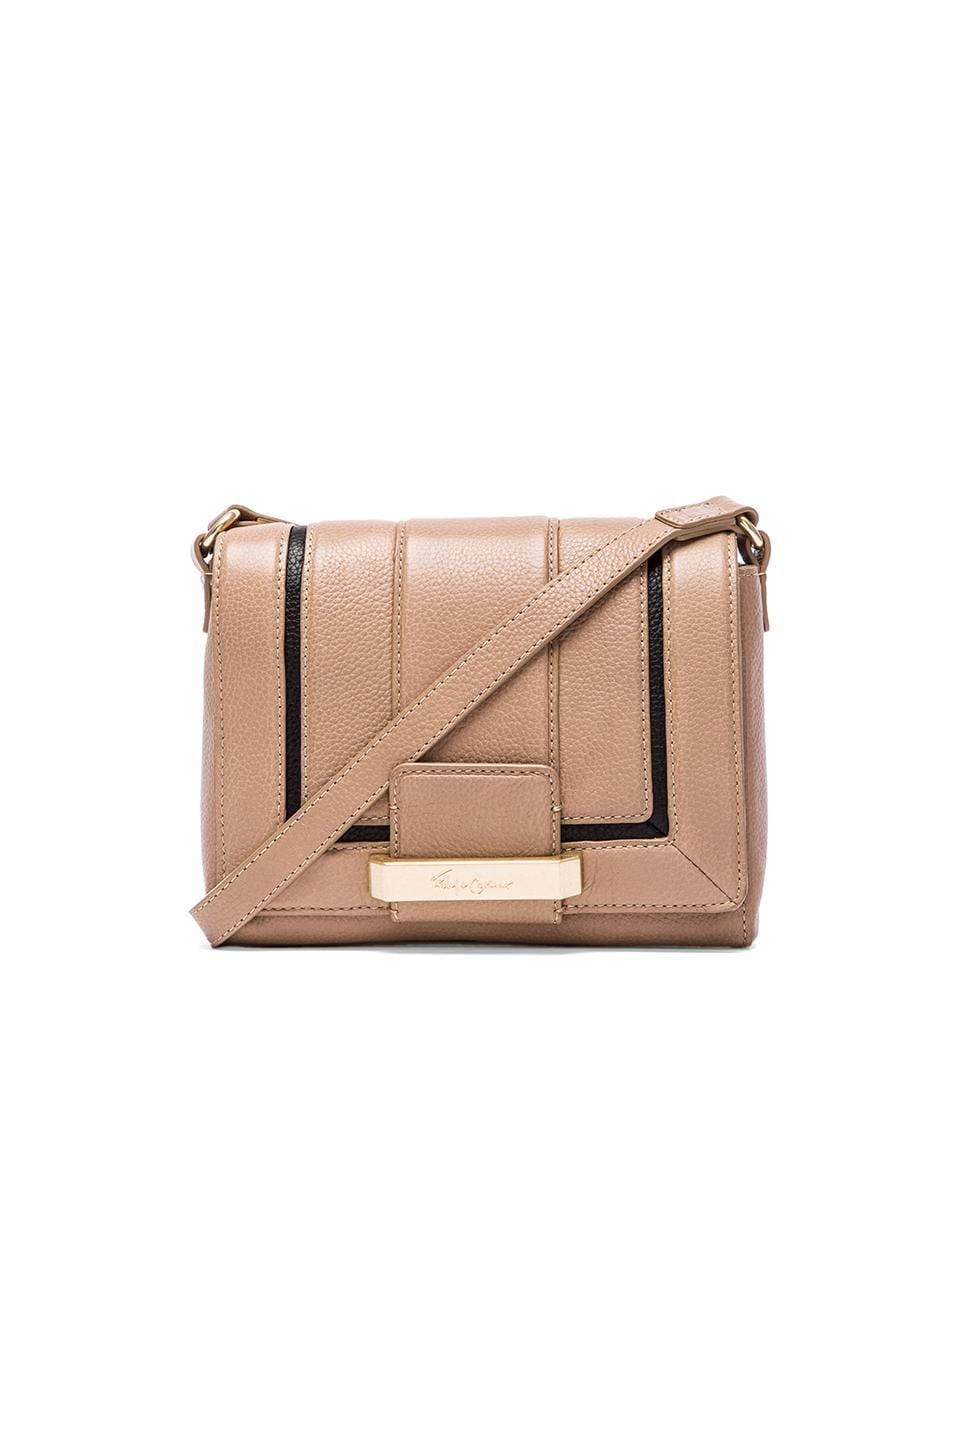 Foley + Corinna Becker Crossbody in Almond & Black